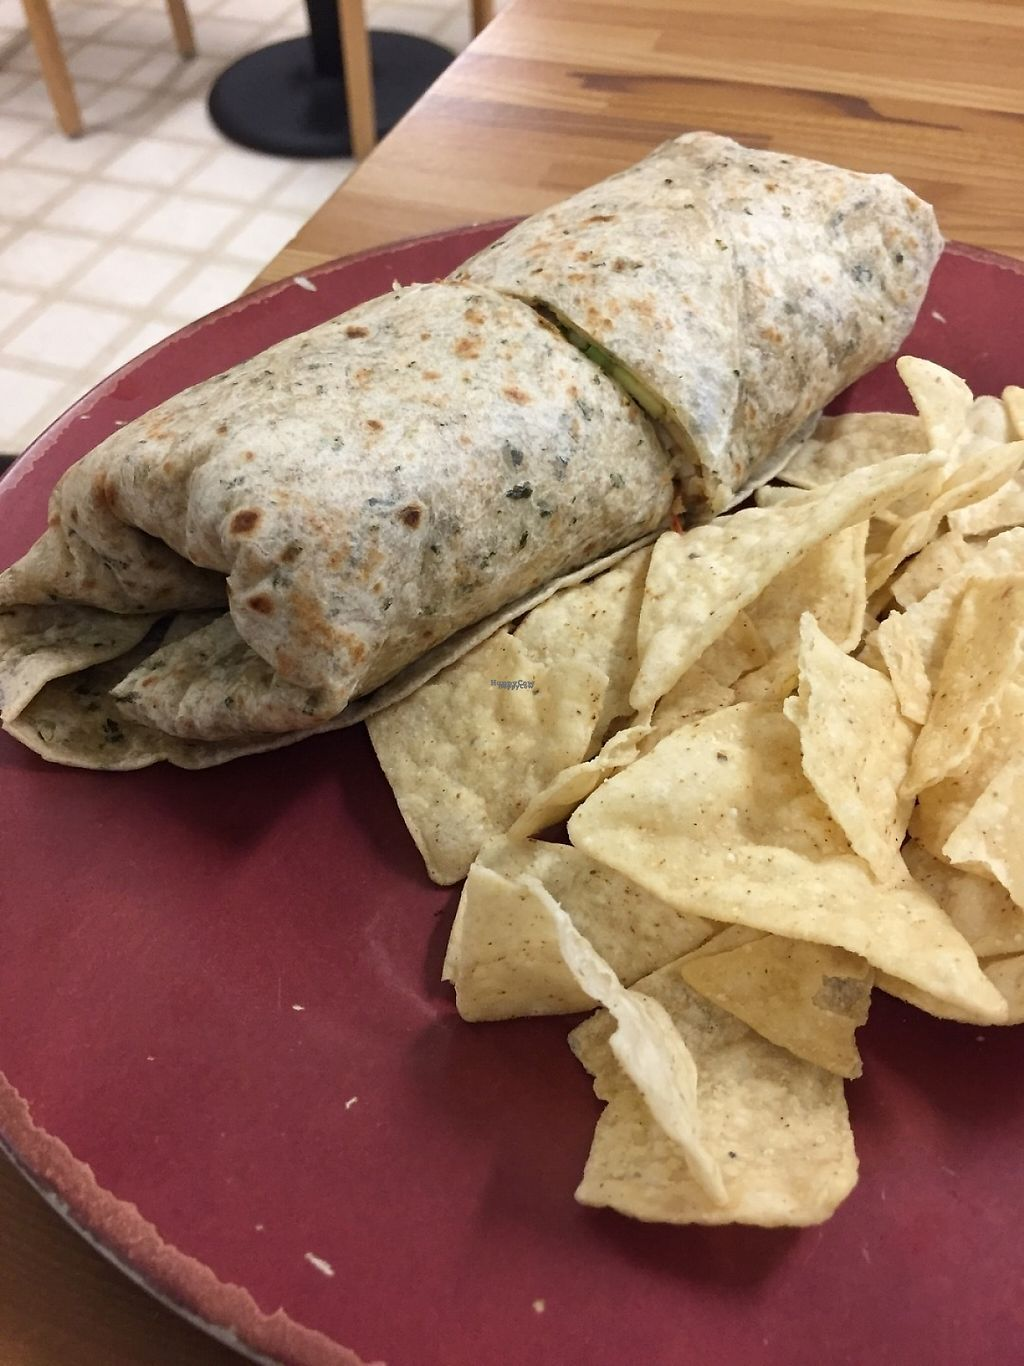 "Photo of Sunflower Natural Food Store and Deli  by <a href=""/members/profile/SFRobbie"">SFRobbie</a> <br/>Vegan tempeh spinach wrap <br/> December 10, 2016  - <a href='/contact/abuse/image/4613/198839'>Report</a>"